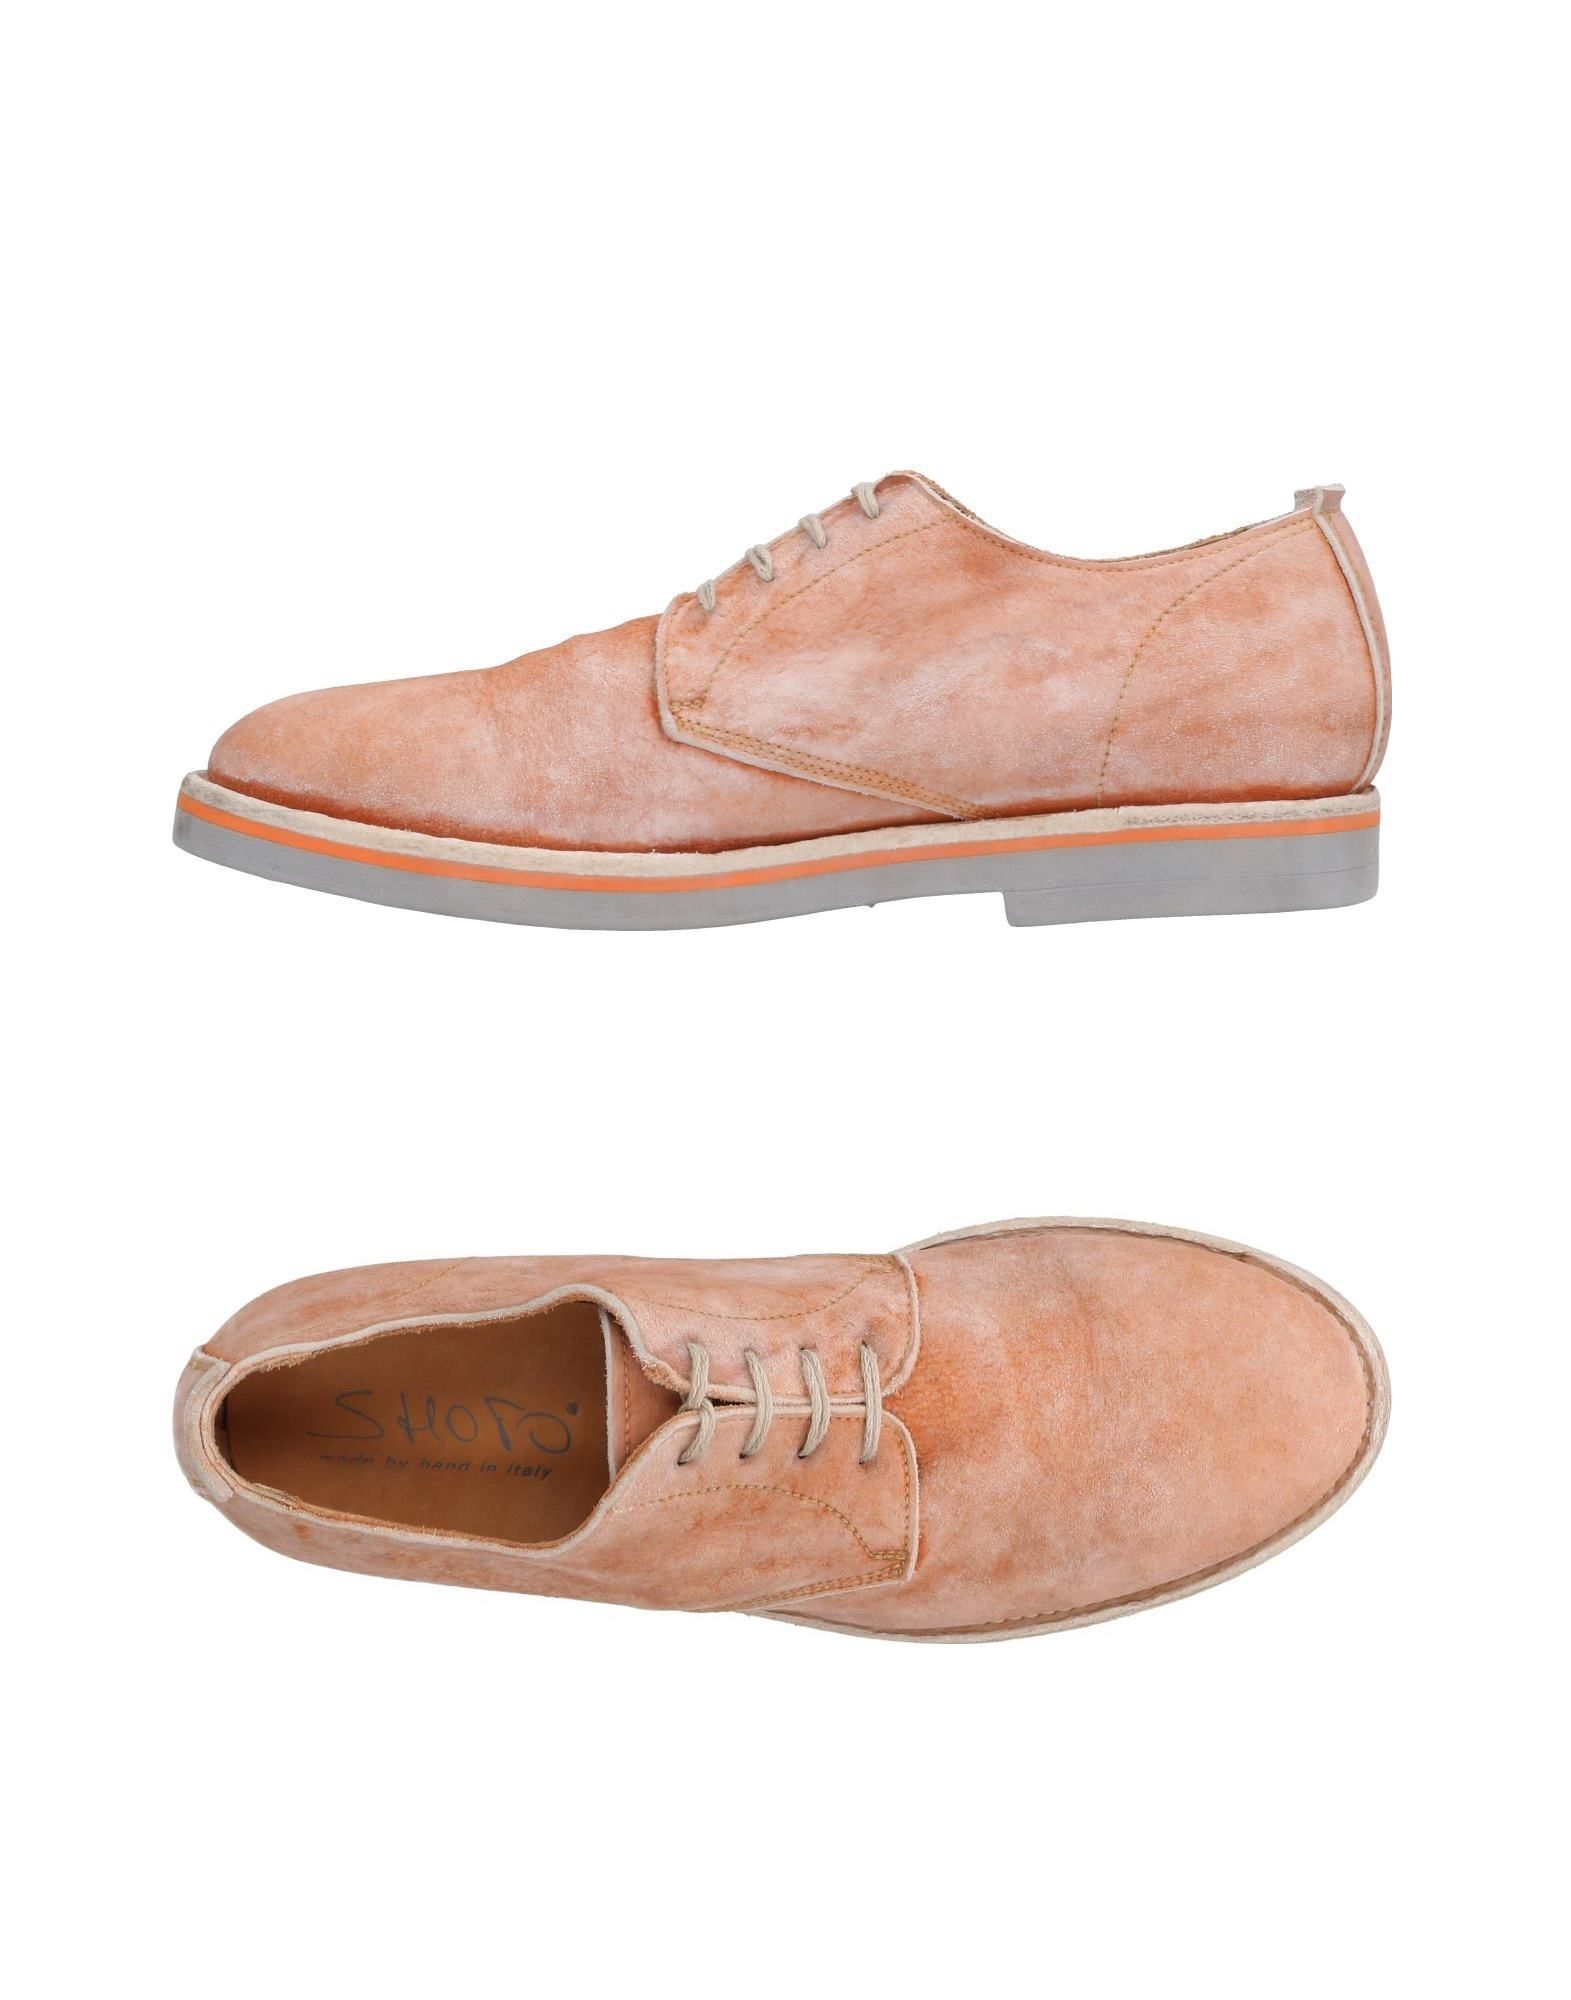 SHOTO Lace-Up Shoes in Pale Pink